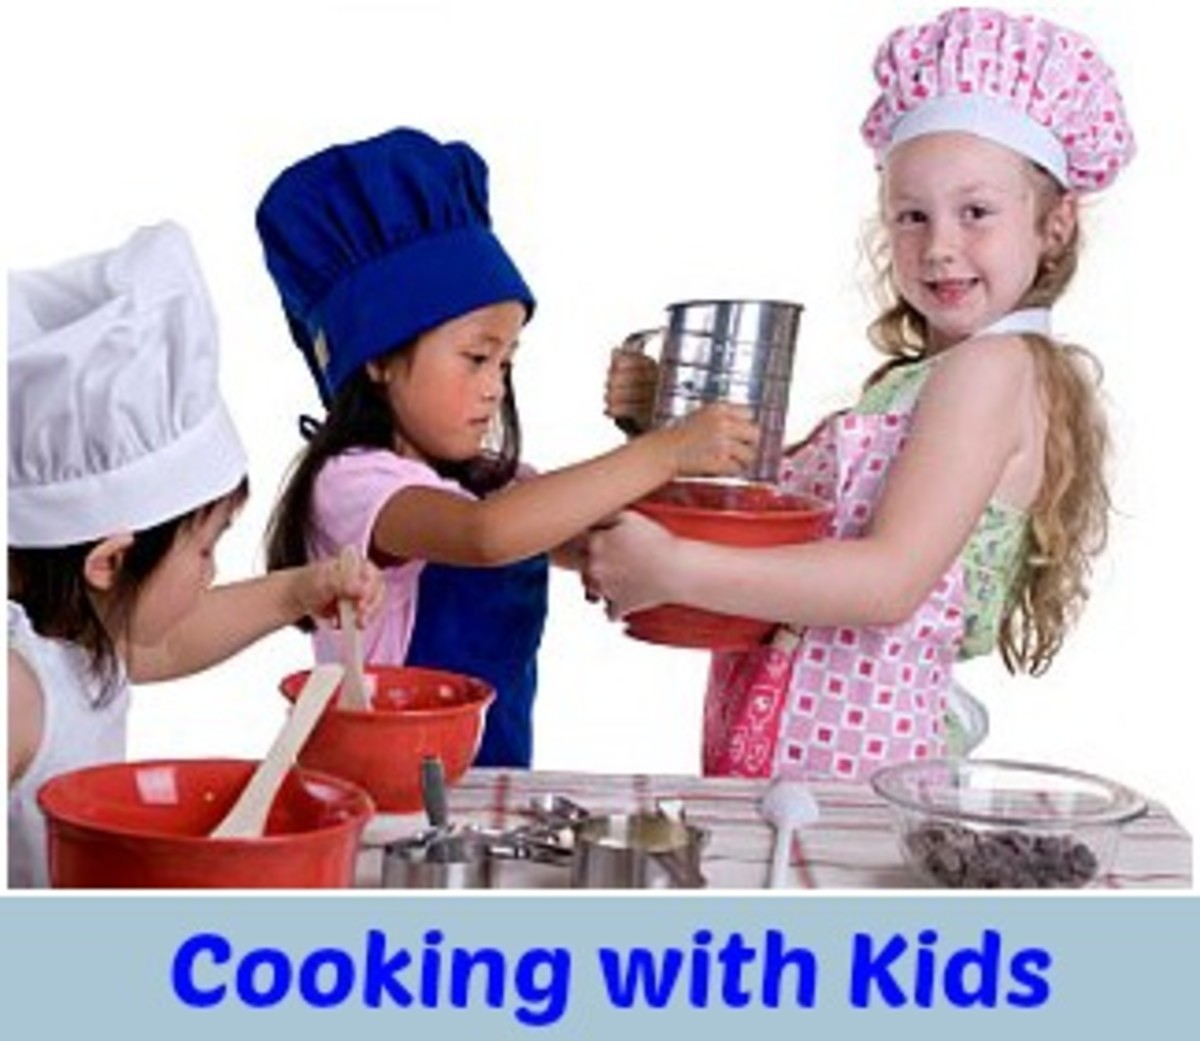 Cooking with Kids, kids cooking